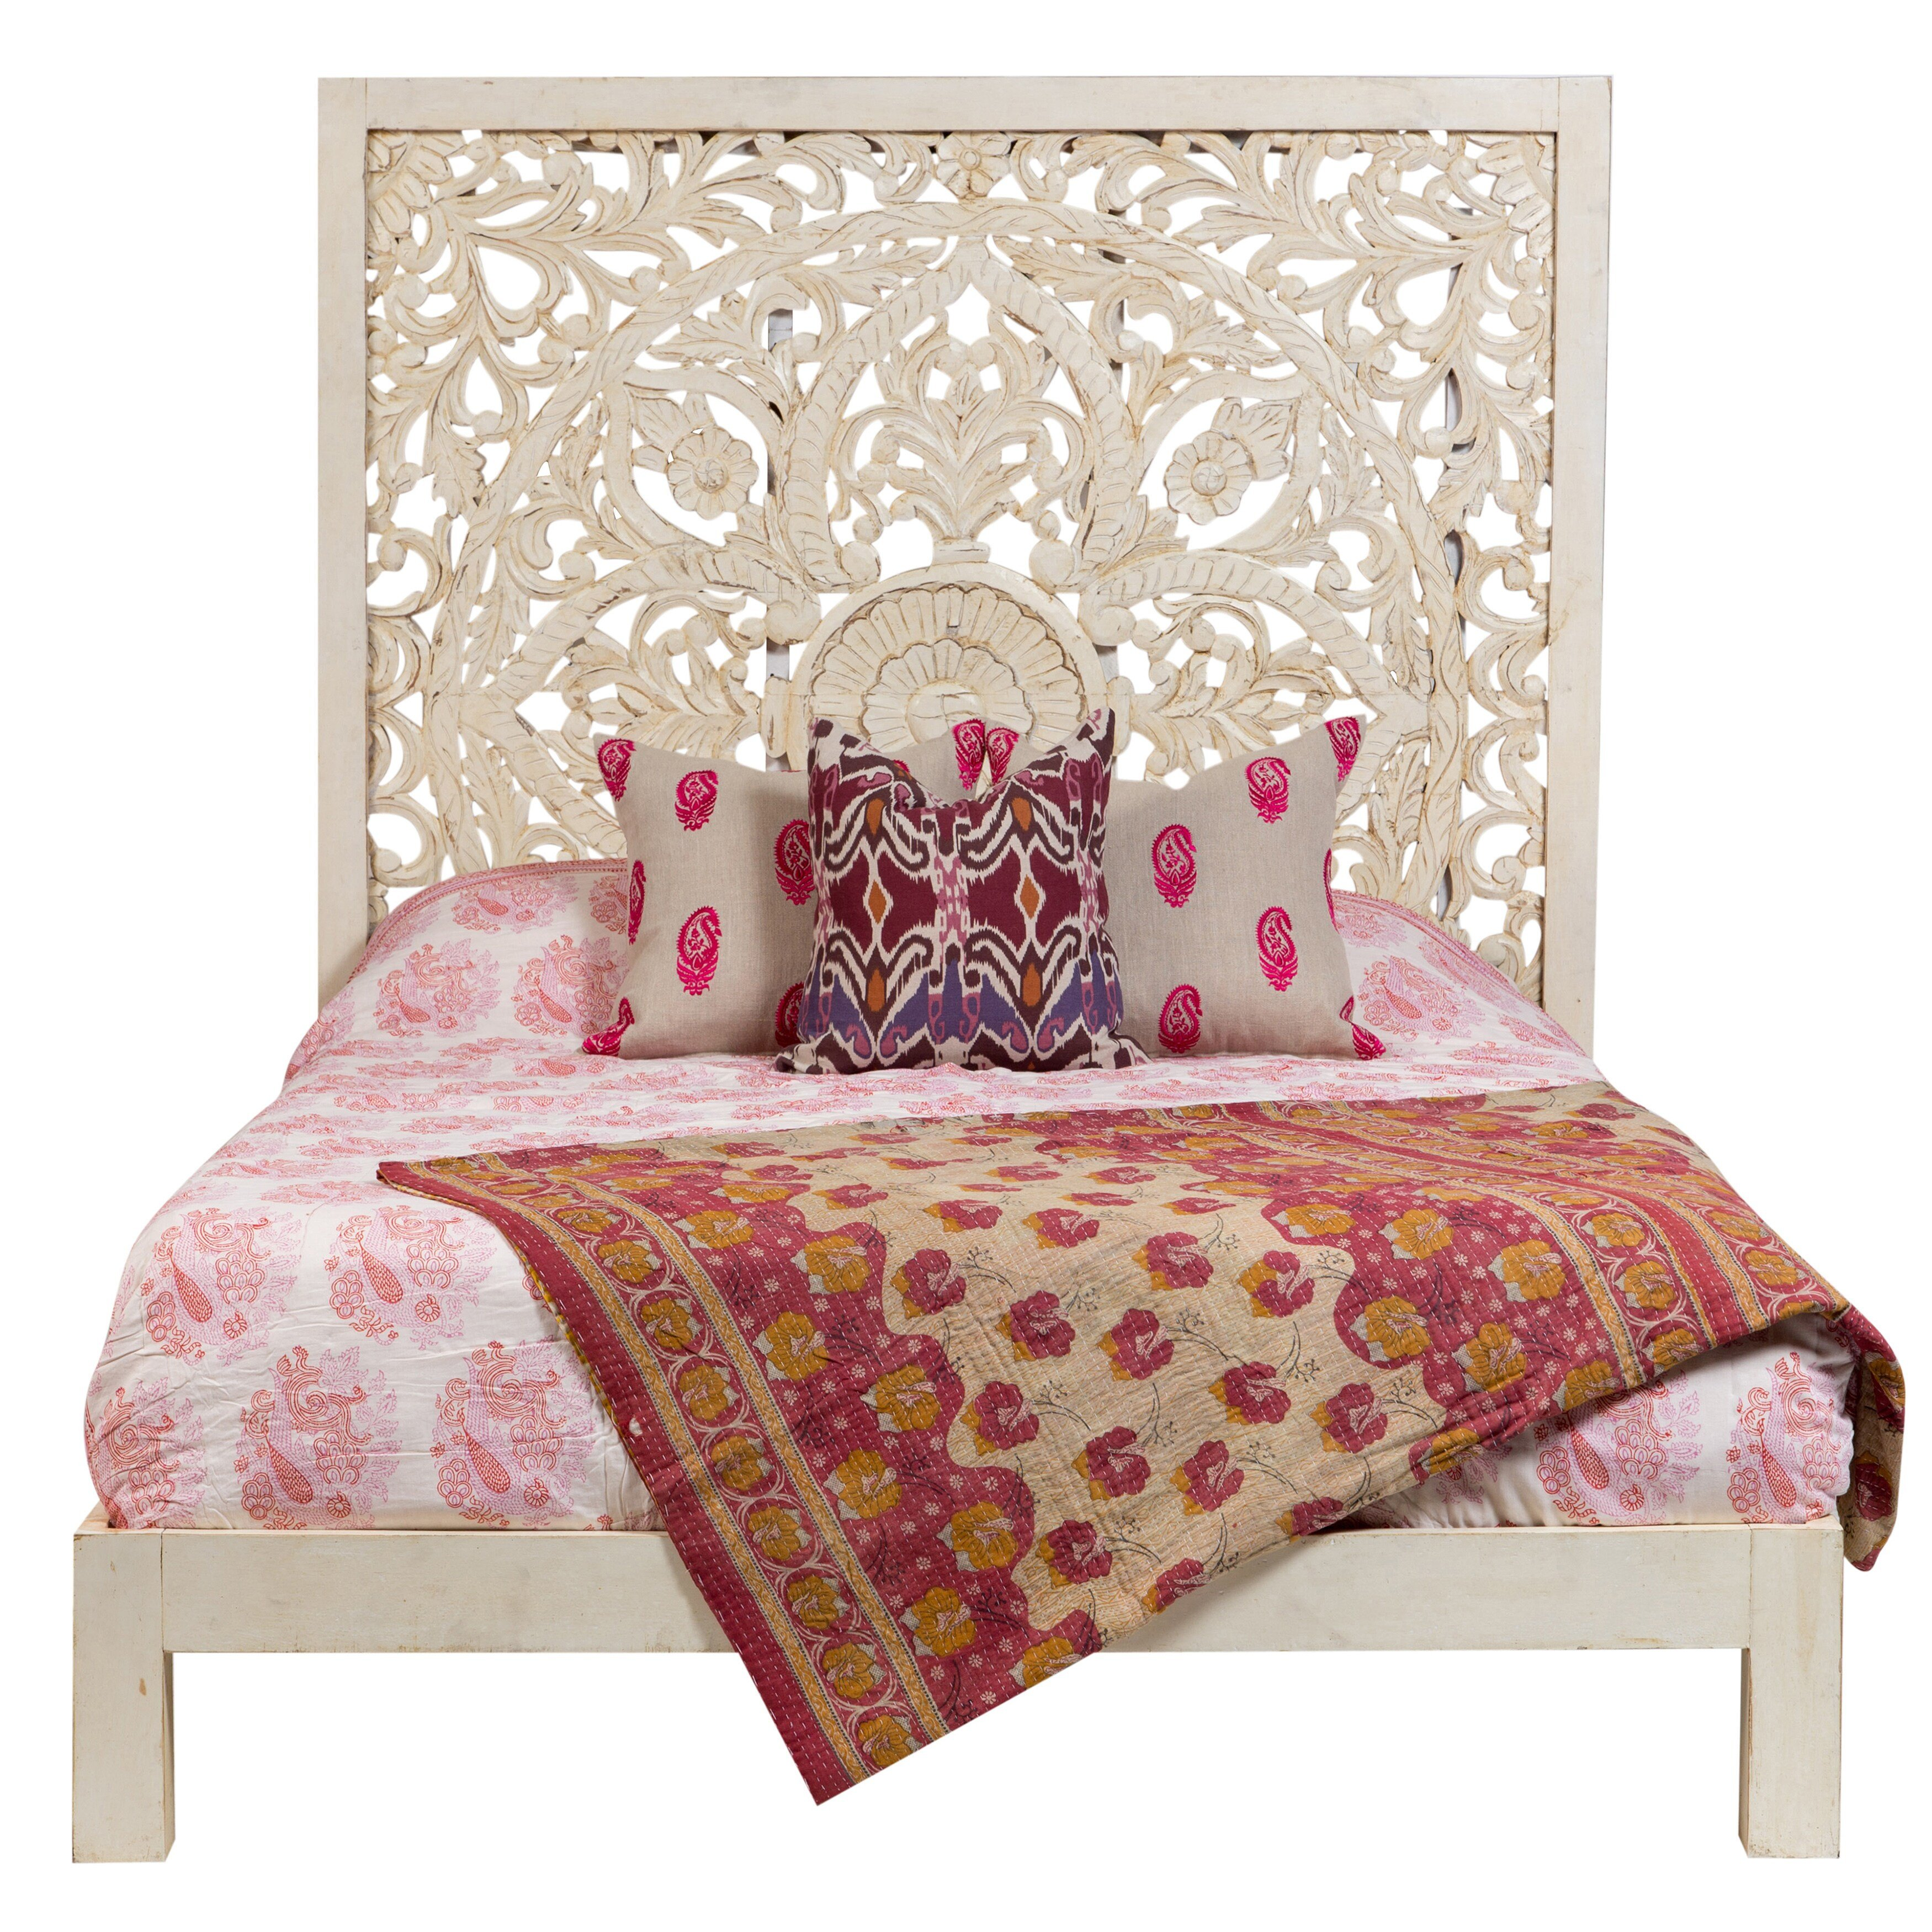 White Washed Bedroom Furniture Beautiful Wanderloot Bali Handmade Floral Medallion White Painted Mango Queen Panel Bed India